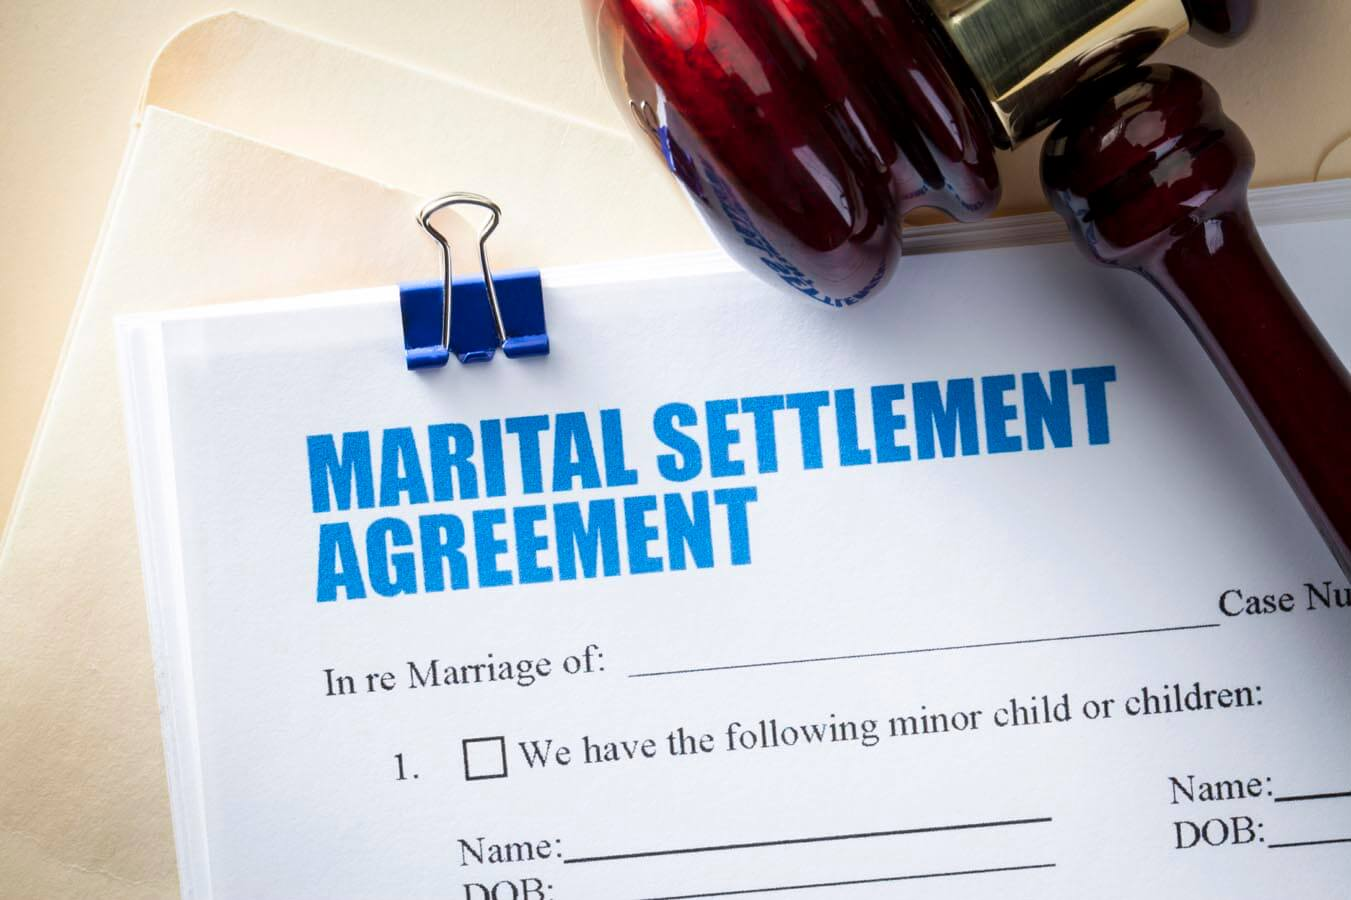 Make sure to take care and close joint accounts after divorce